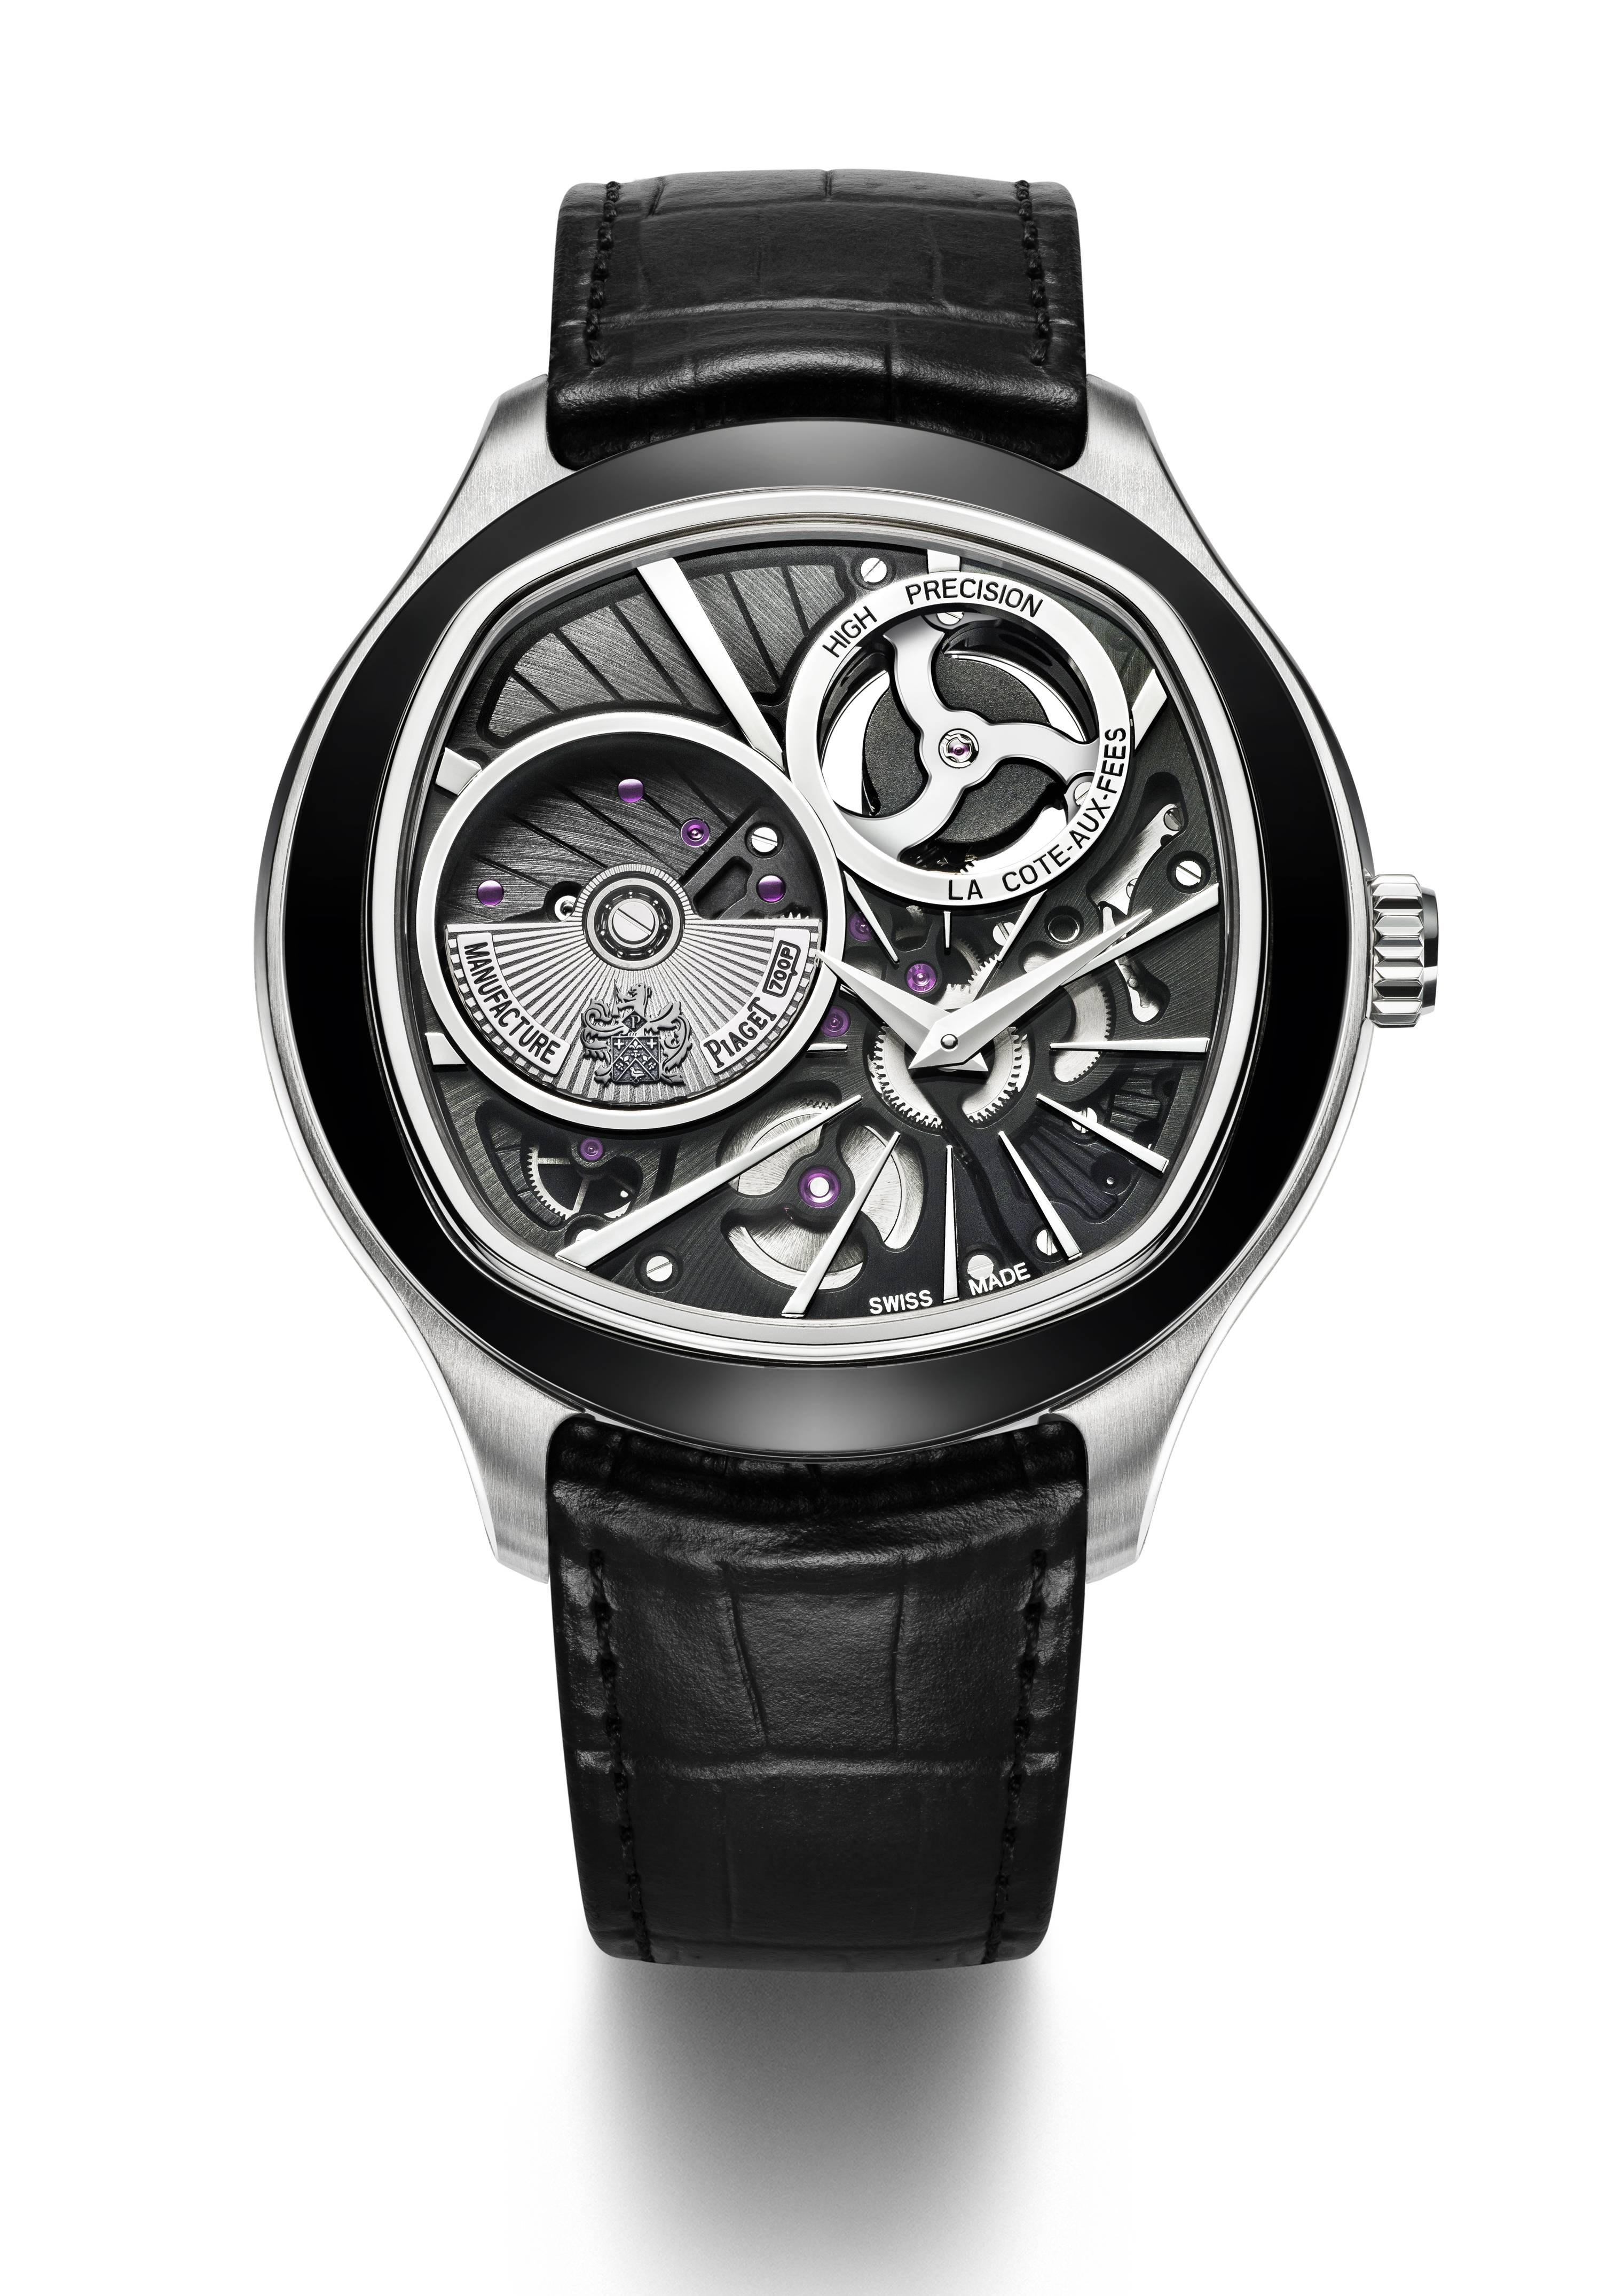 Piaget Announces Two New Pieces Ahead Of SIHH 2016